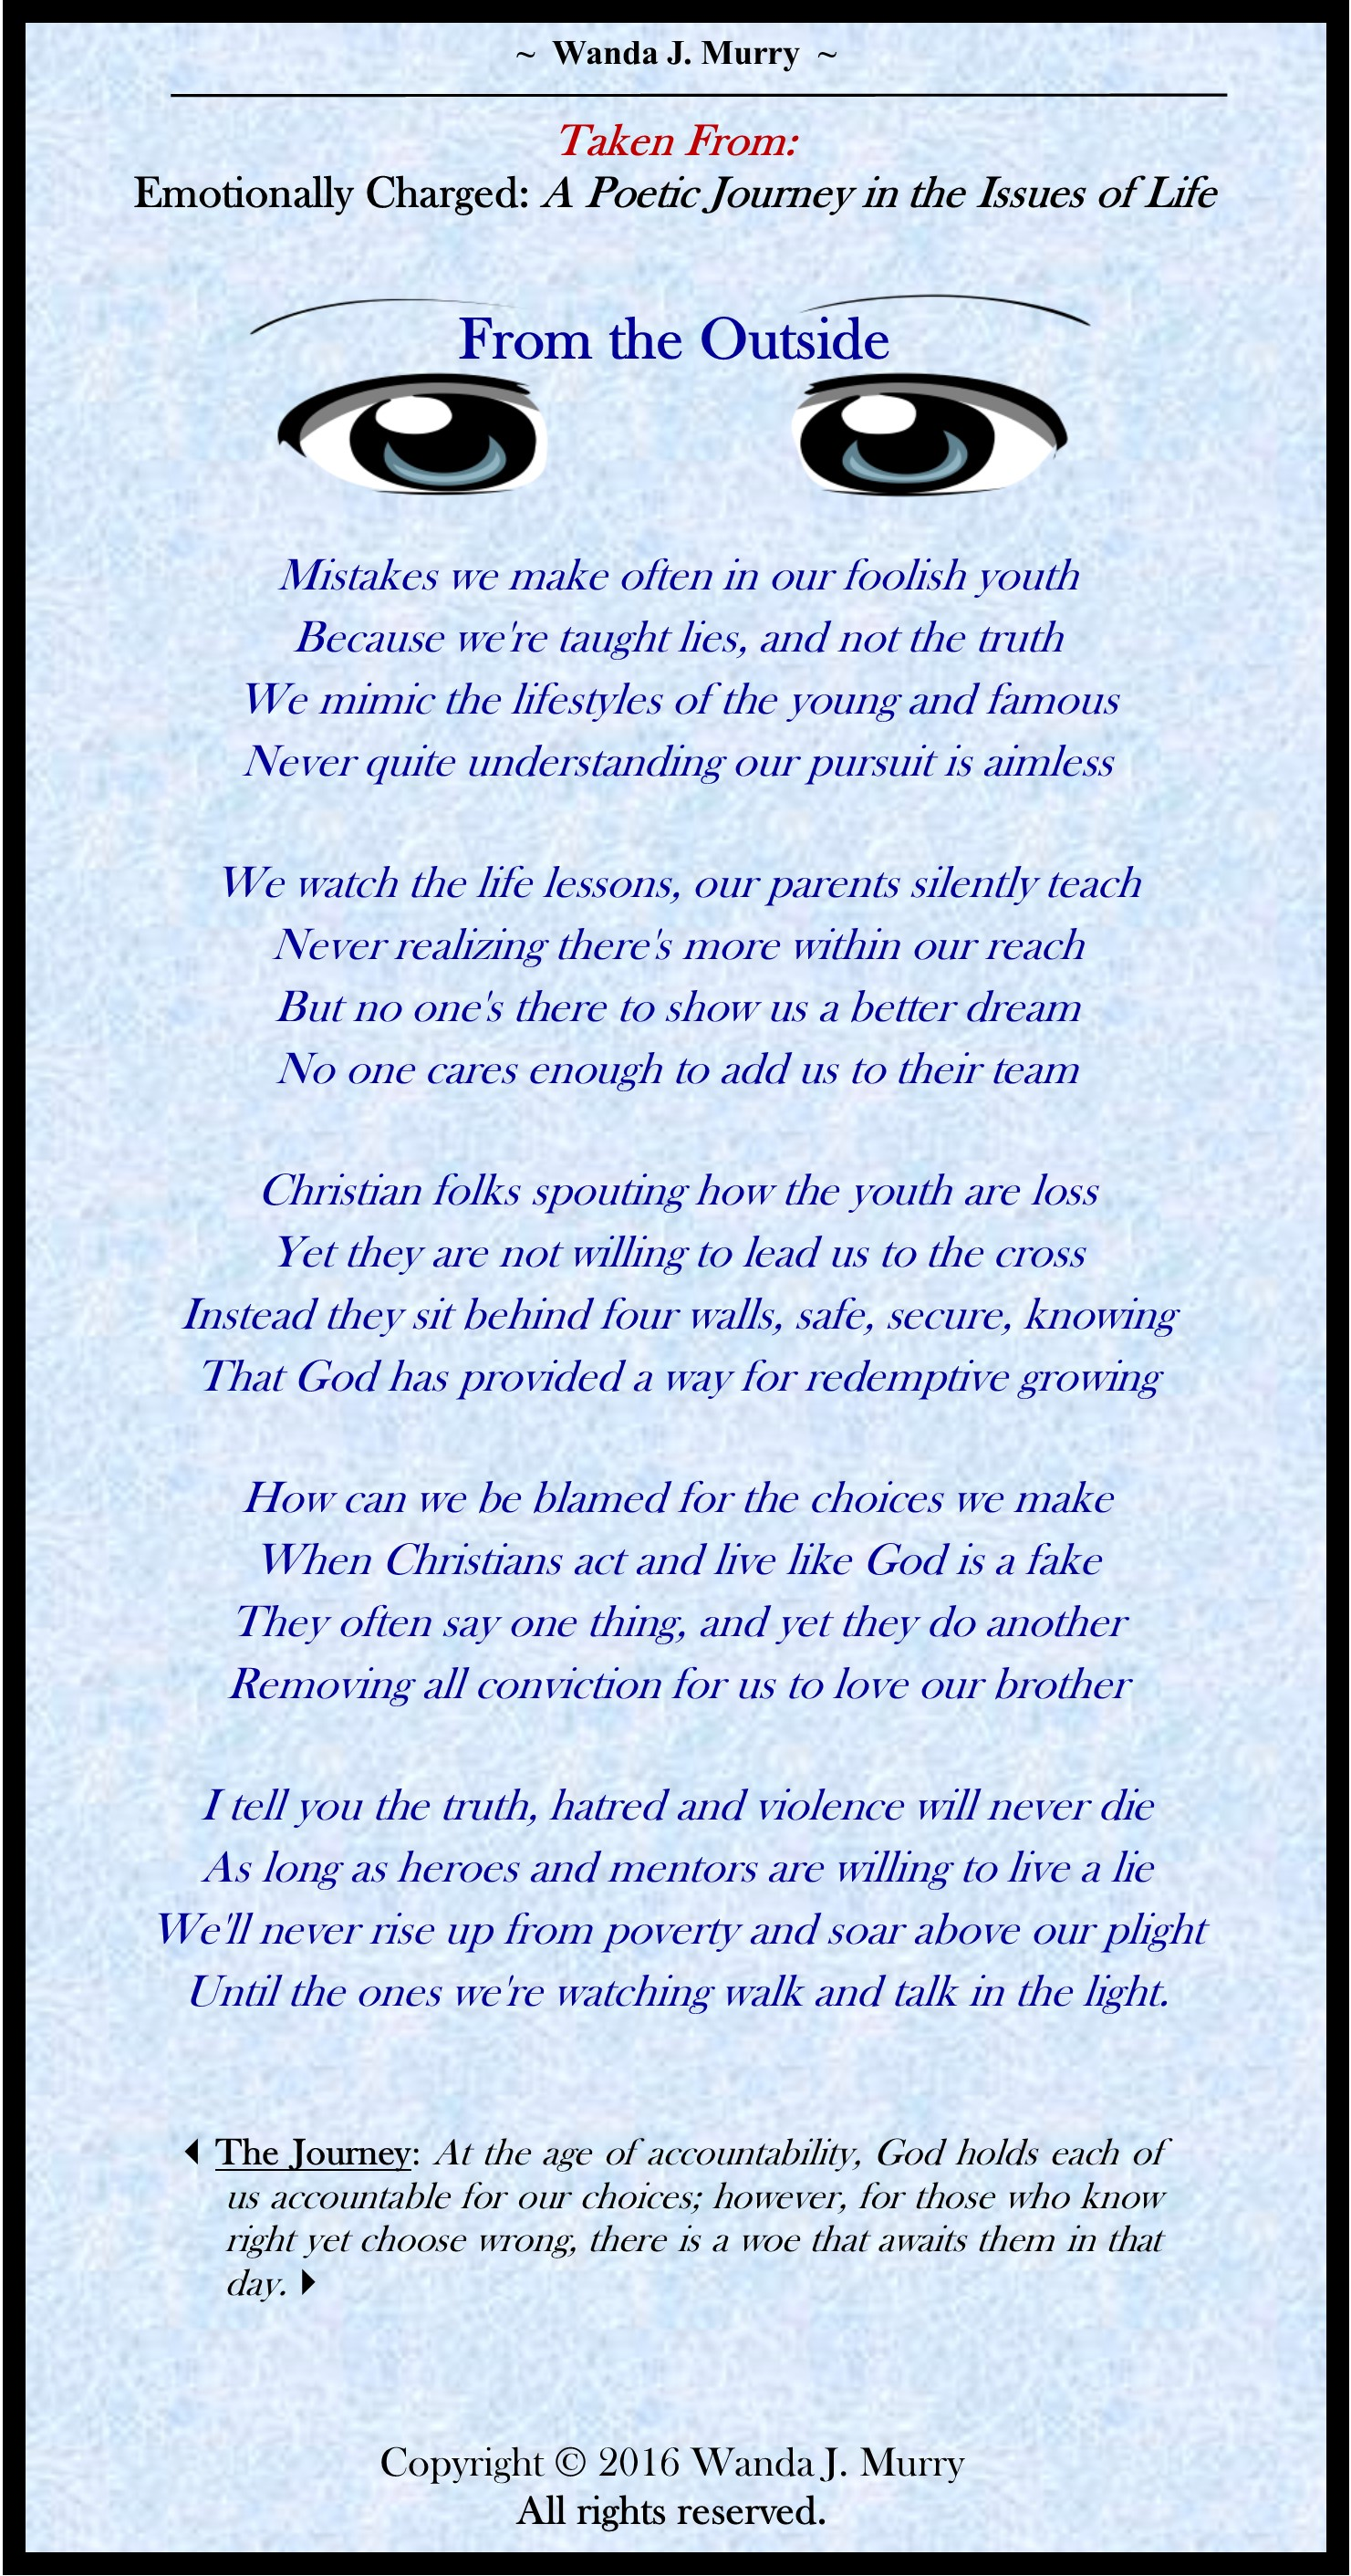 080718-POEM-From-the-Outside